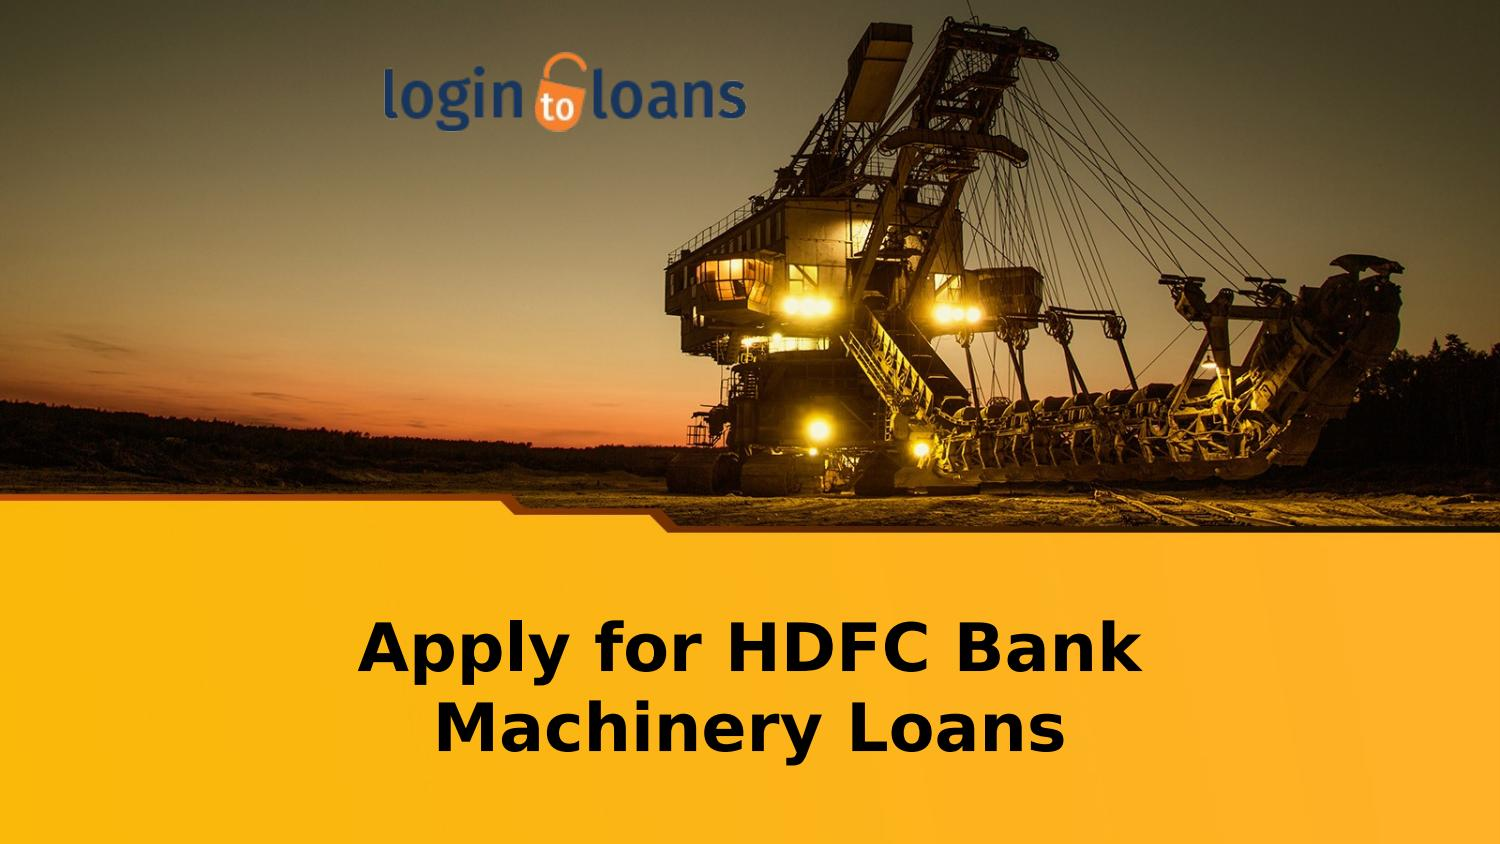 Hdfc bank machinery loan, apply for hdfc bank machinery loan in india logintoloans by ...